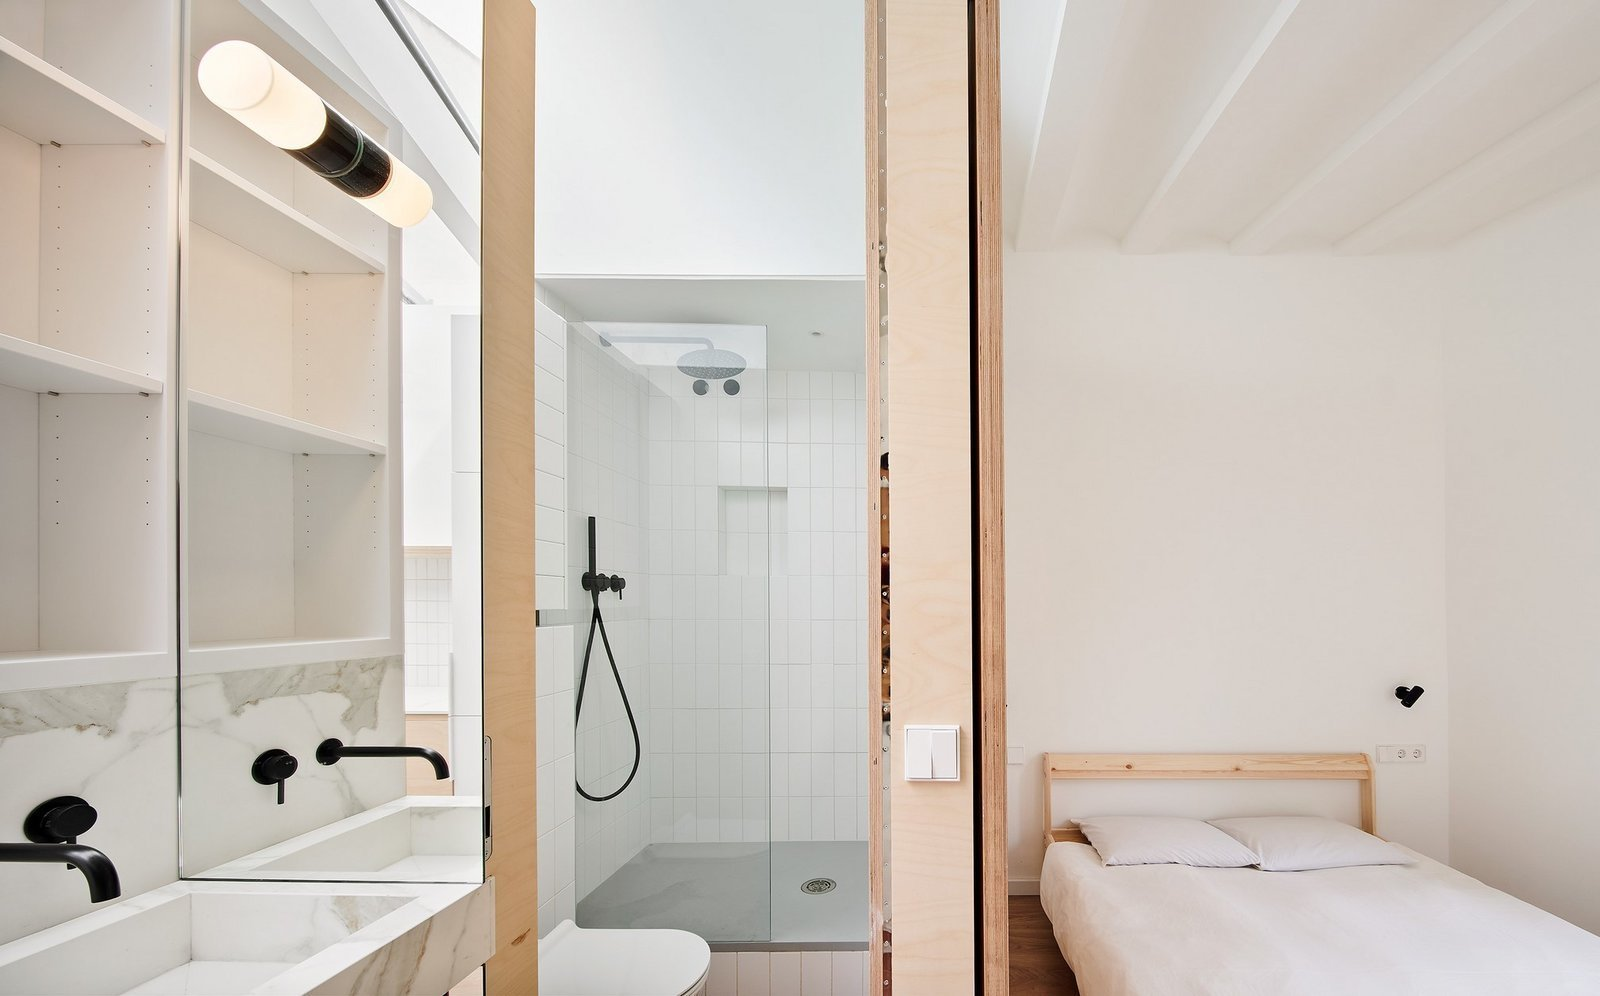 Bath Room, Marble Counter, One Piece Toilet, Wall Mount Sink, Open Shower, and Accent Lighting  Photo 9 of 17 in Picture Windows and Sliding Doors Work Magic in This Cozy Barcelona Home from The Akari House